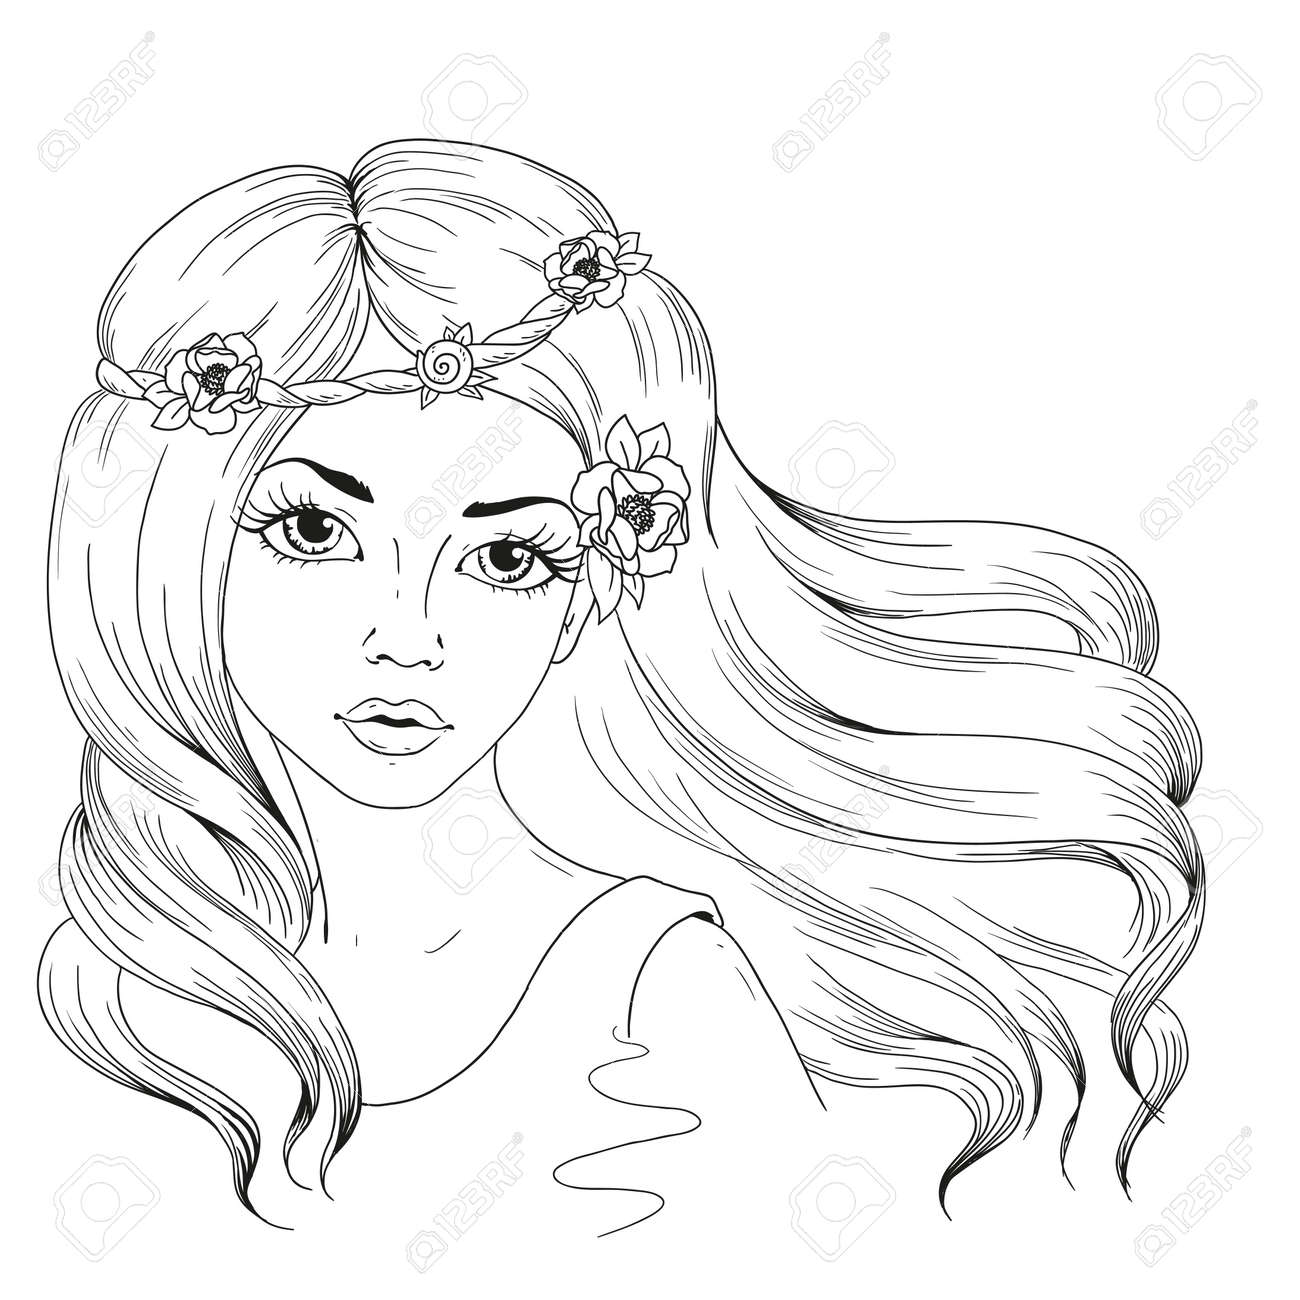 Beautiful girl with long hair woman with flowers in hairstyle vector character hand drawing